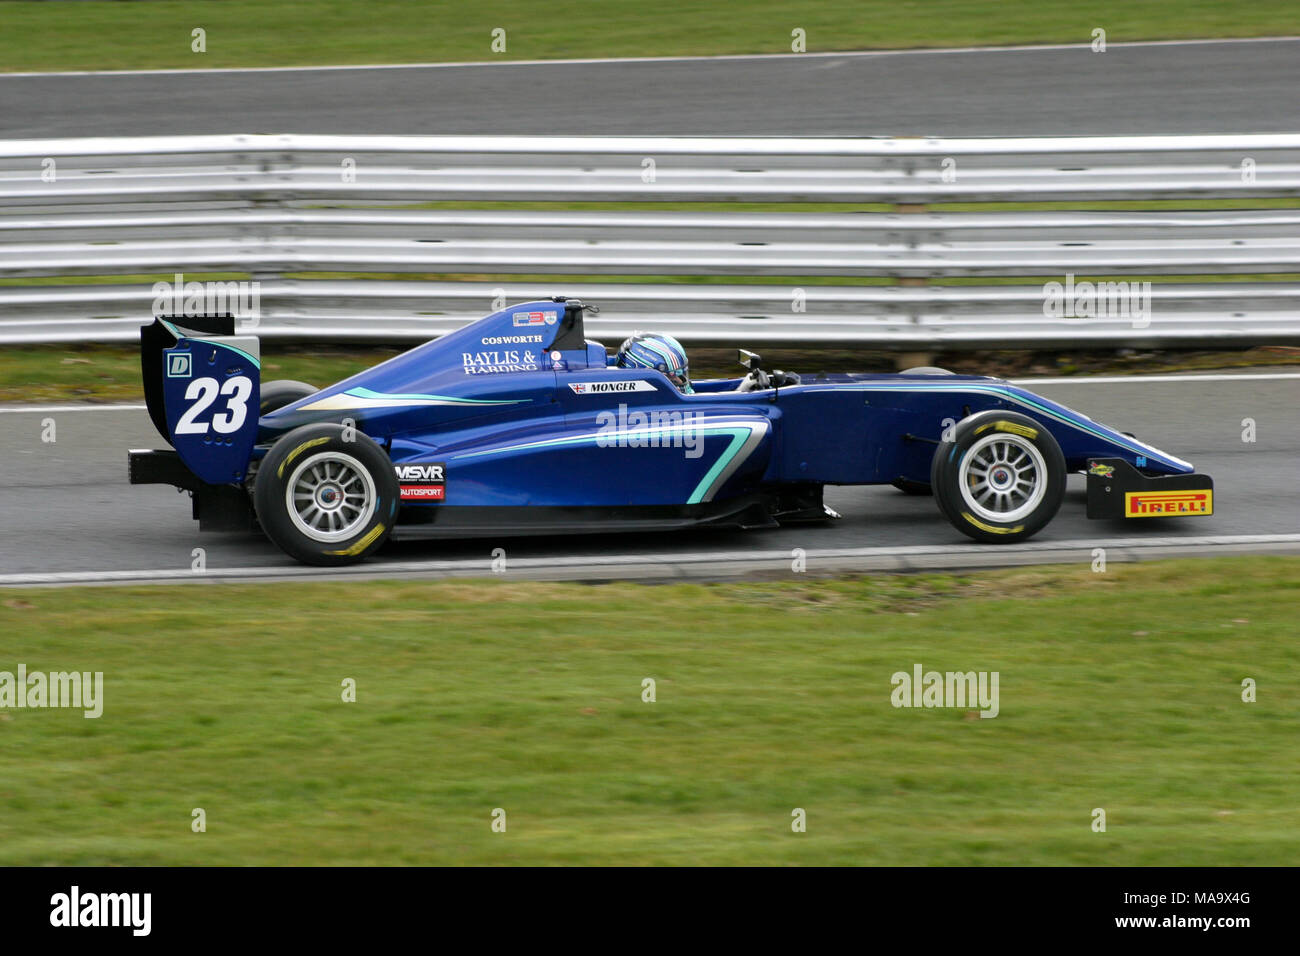 Cheshire, UK, 31 Mar 2018. 18 year old Billy Monger racing at Oulton Park, for the first time since the accident in whuich he lost his legs. Credit: Ian Simpson/Alamy Live News Stock Photo